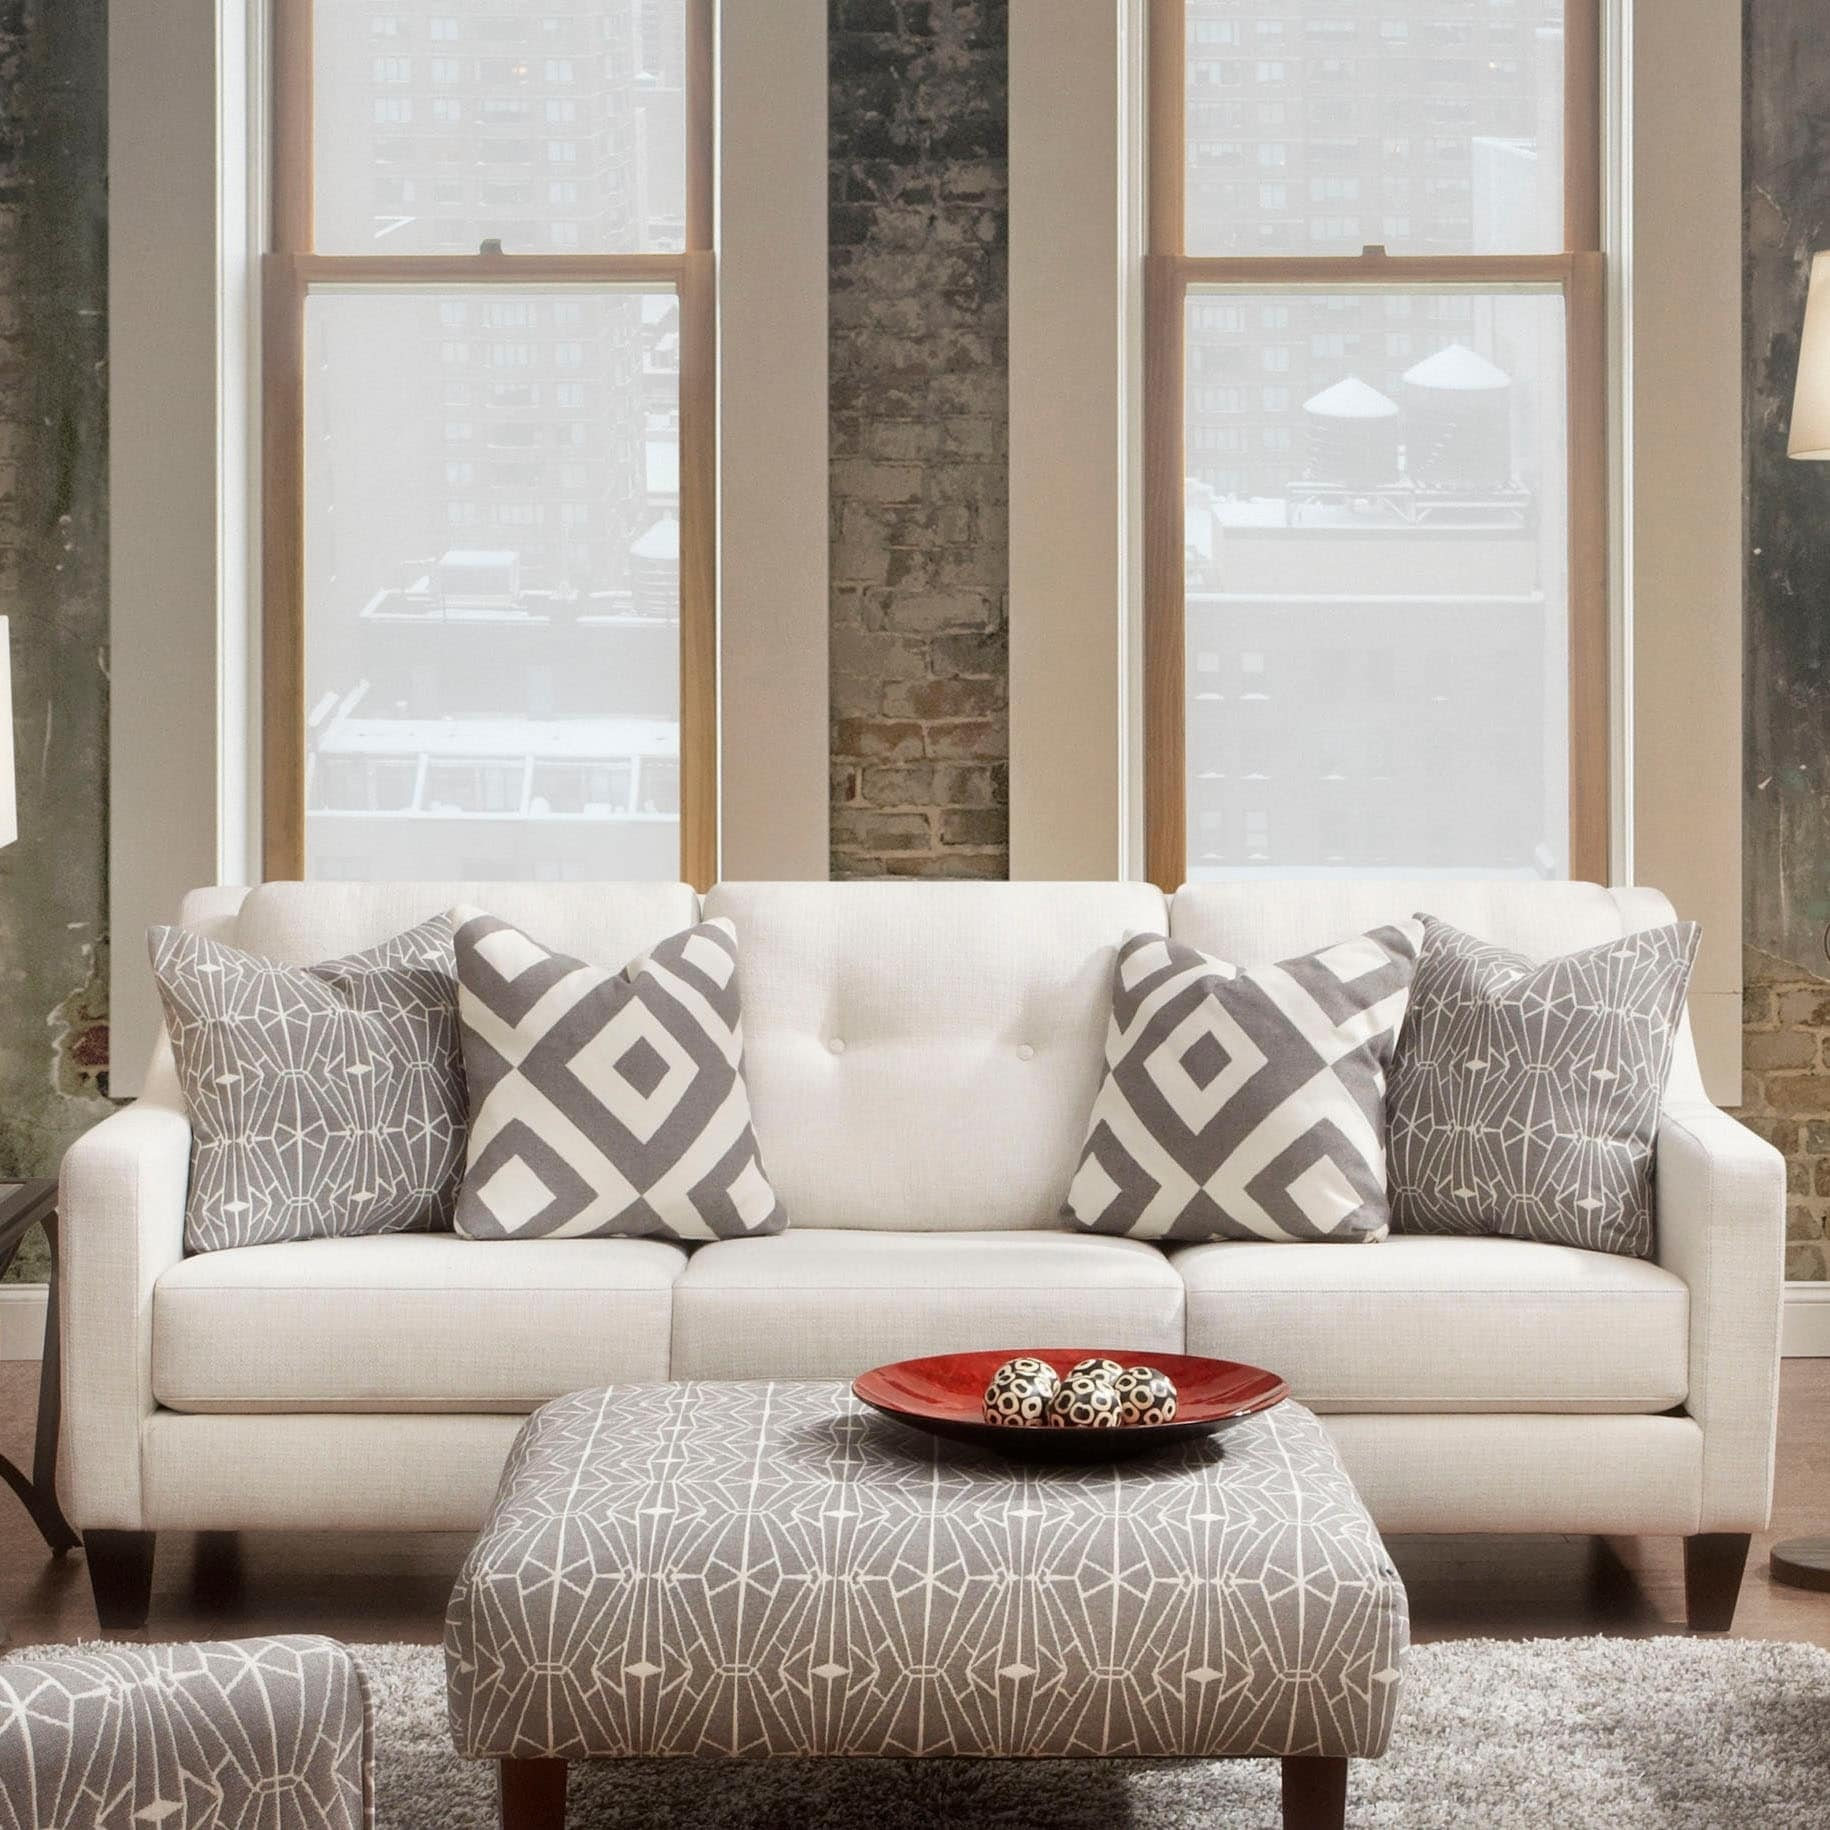 Cara Contemporary Ivory Tufted Sofa By Foa On Free Shipping Today 10353154